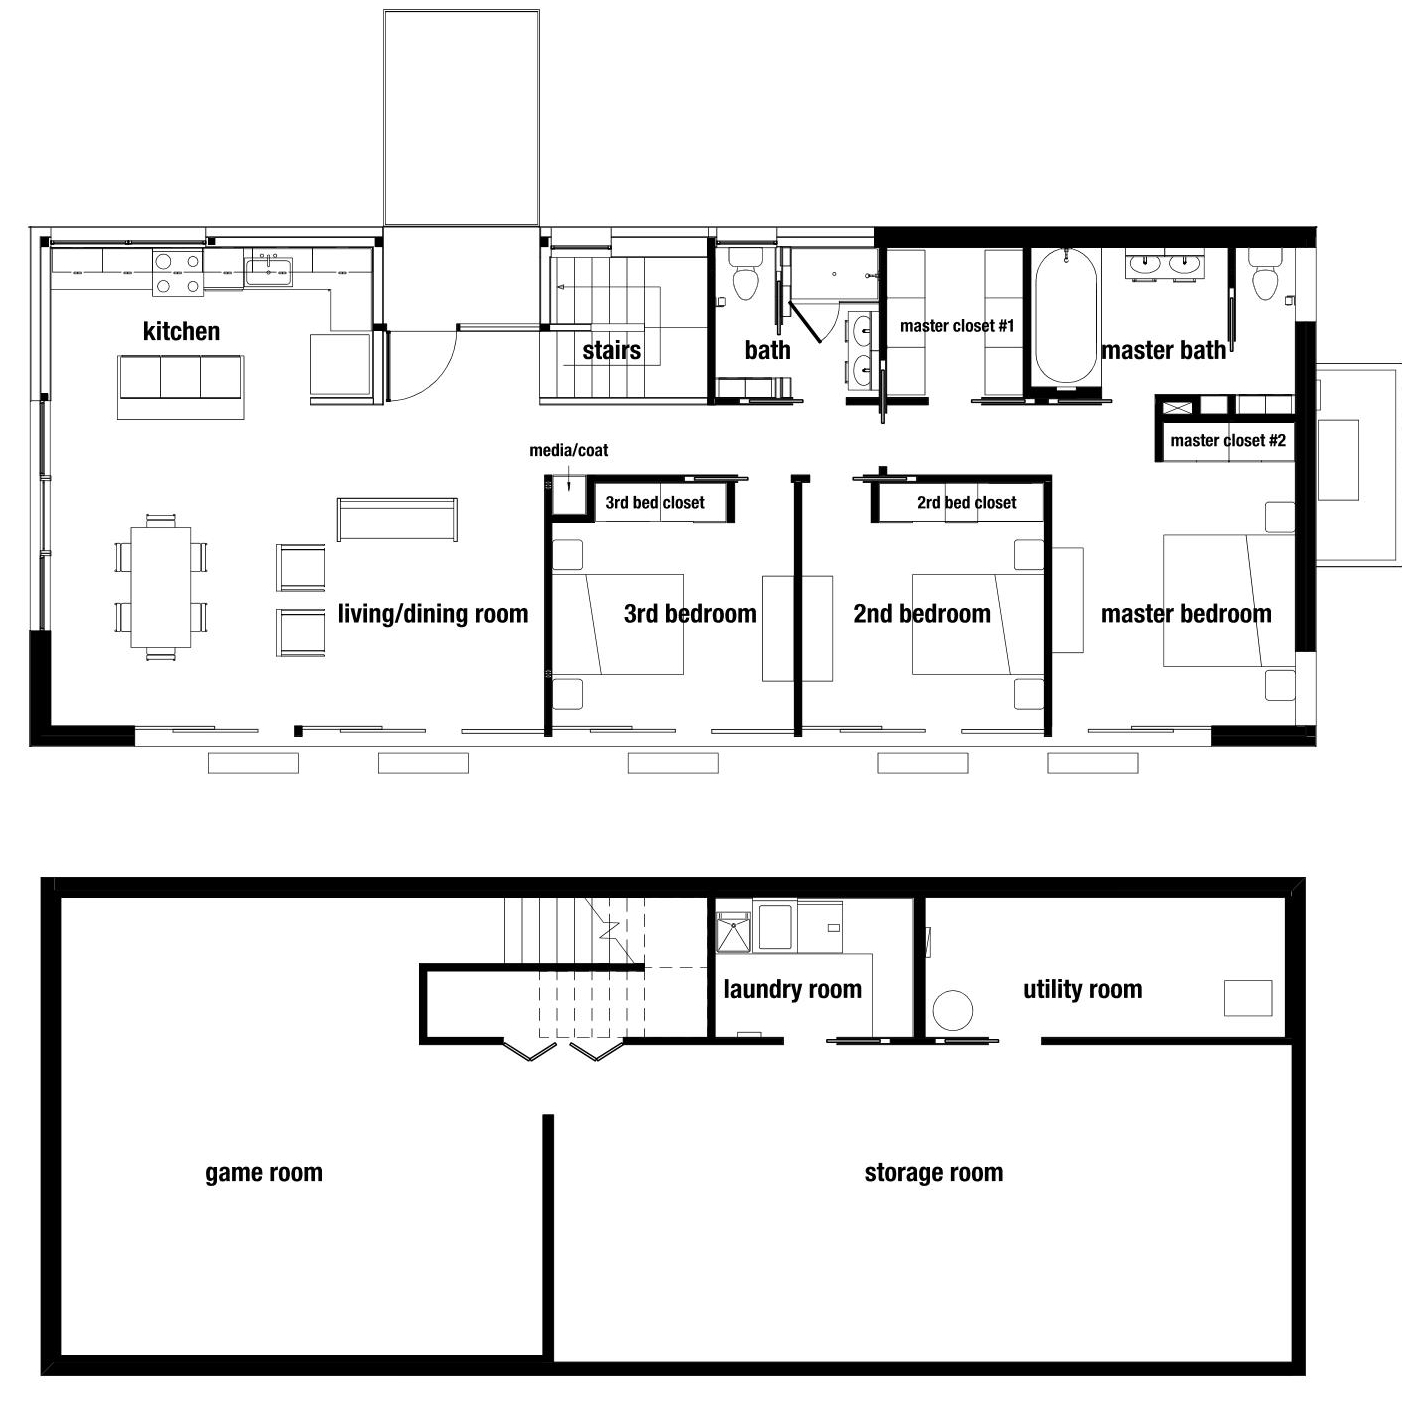 """OVERALL DIMENSION: 64'-4"""" x 26'-0""""   OVERALL SQ. FT.: approx. 1669 sq. ft.   LIVING & DINING: 24'-8"""" x 16'-0""""   KITCHEN: 16'-1"""" x 7'-10""""   PORCH: 7'-10"""" X 4'-10""""   COAT/MEDIA CLOSET: 6 sq. ft.   MASTER BEDROOM: 12'-6"""" x 12'-2""""   MASTER CLOSET: 53 sq. ft.   MASTER BATHROOM: 101 sq. ft.   MEDIA CLOSET: 6 sq. ft.   CLOSET: 7 sq. ft.   STAIR: 55 sq. ft.   2nd BEDROOM: 12'-2"""" x 9'-9""""   2nd BED CLOSET: 16 sq. ft.   3rd BEDROOM: 12'-1"""" x 9'-9""""   3rd BED CLOSET: 9 sq. ft.   2nd BATHROOM: 61 sq. ft."""